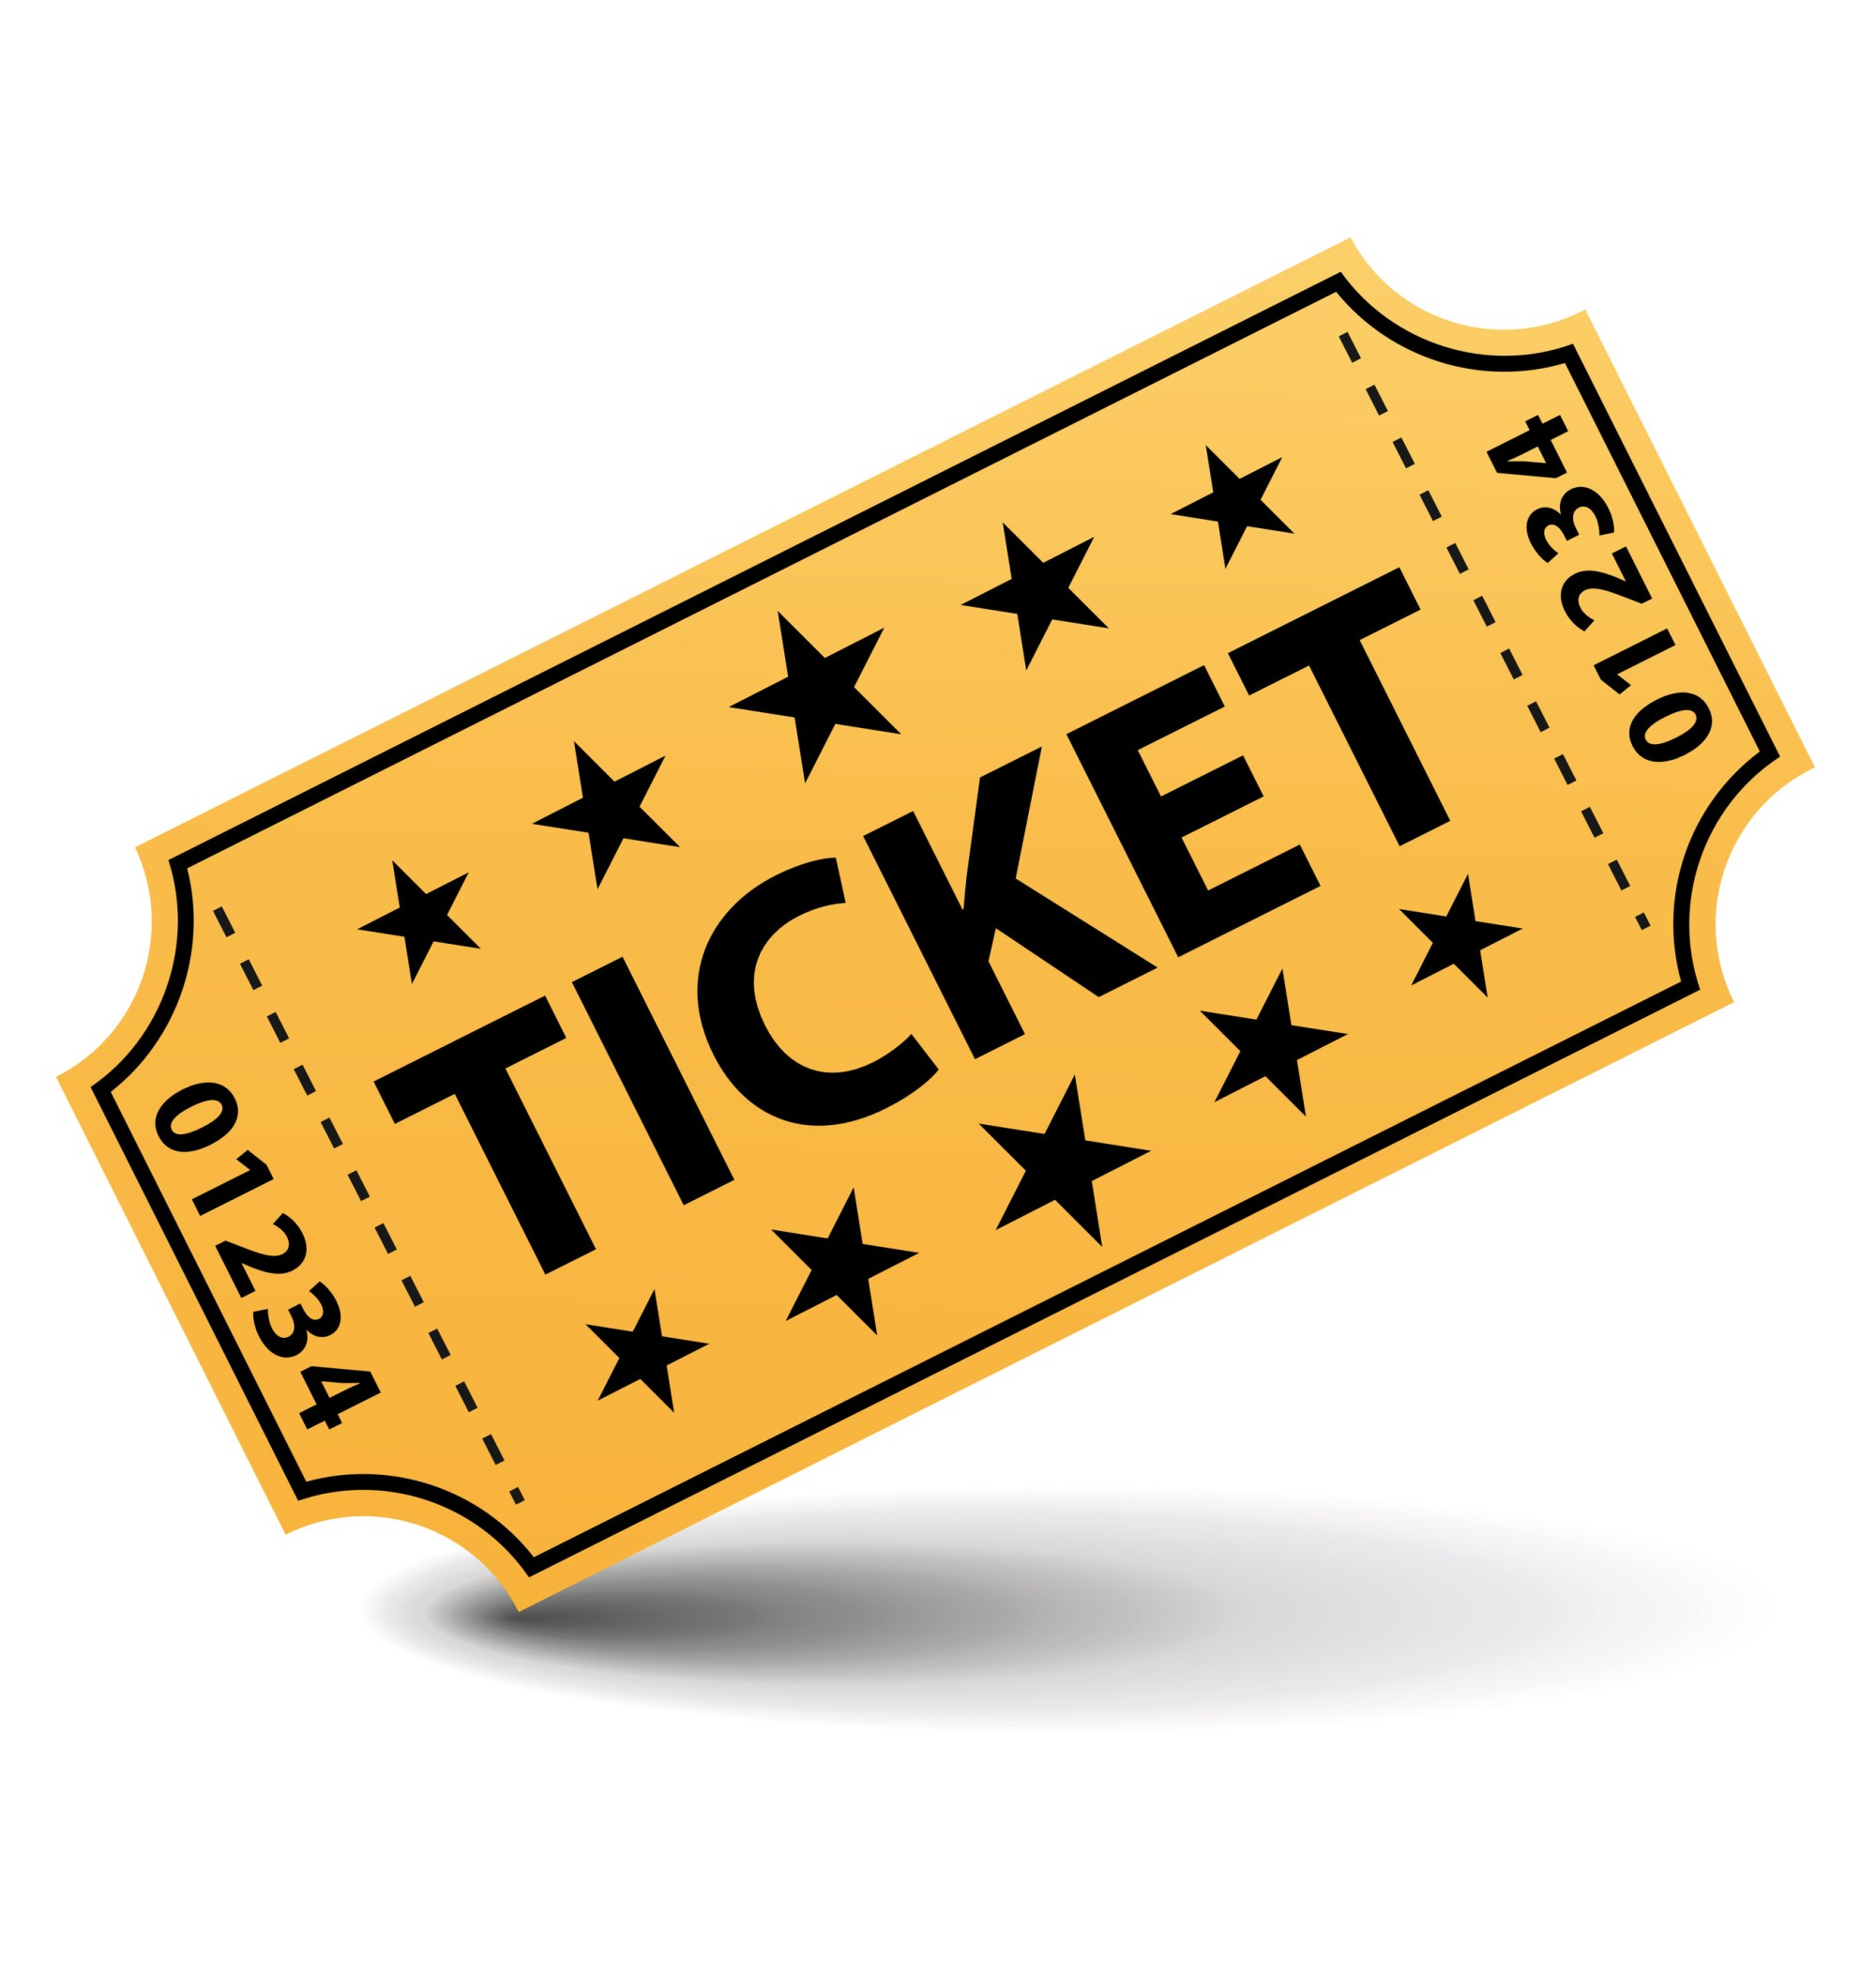 hight resolution of ticket clipart 2 image